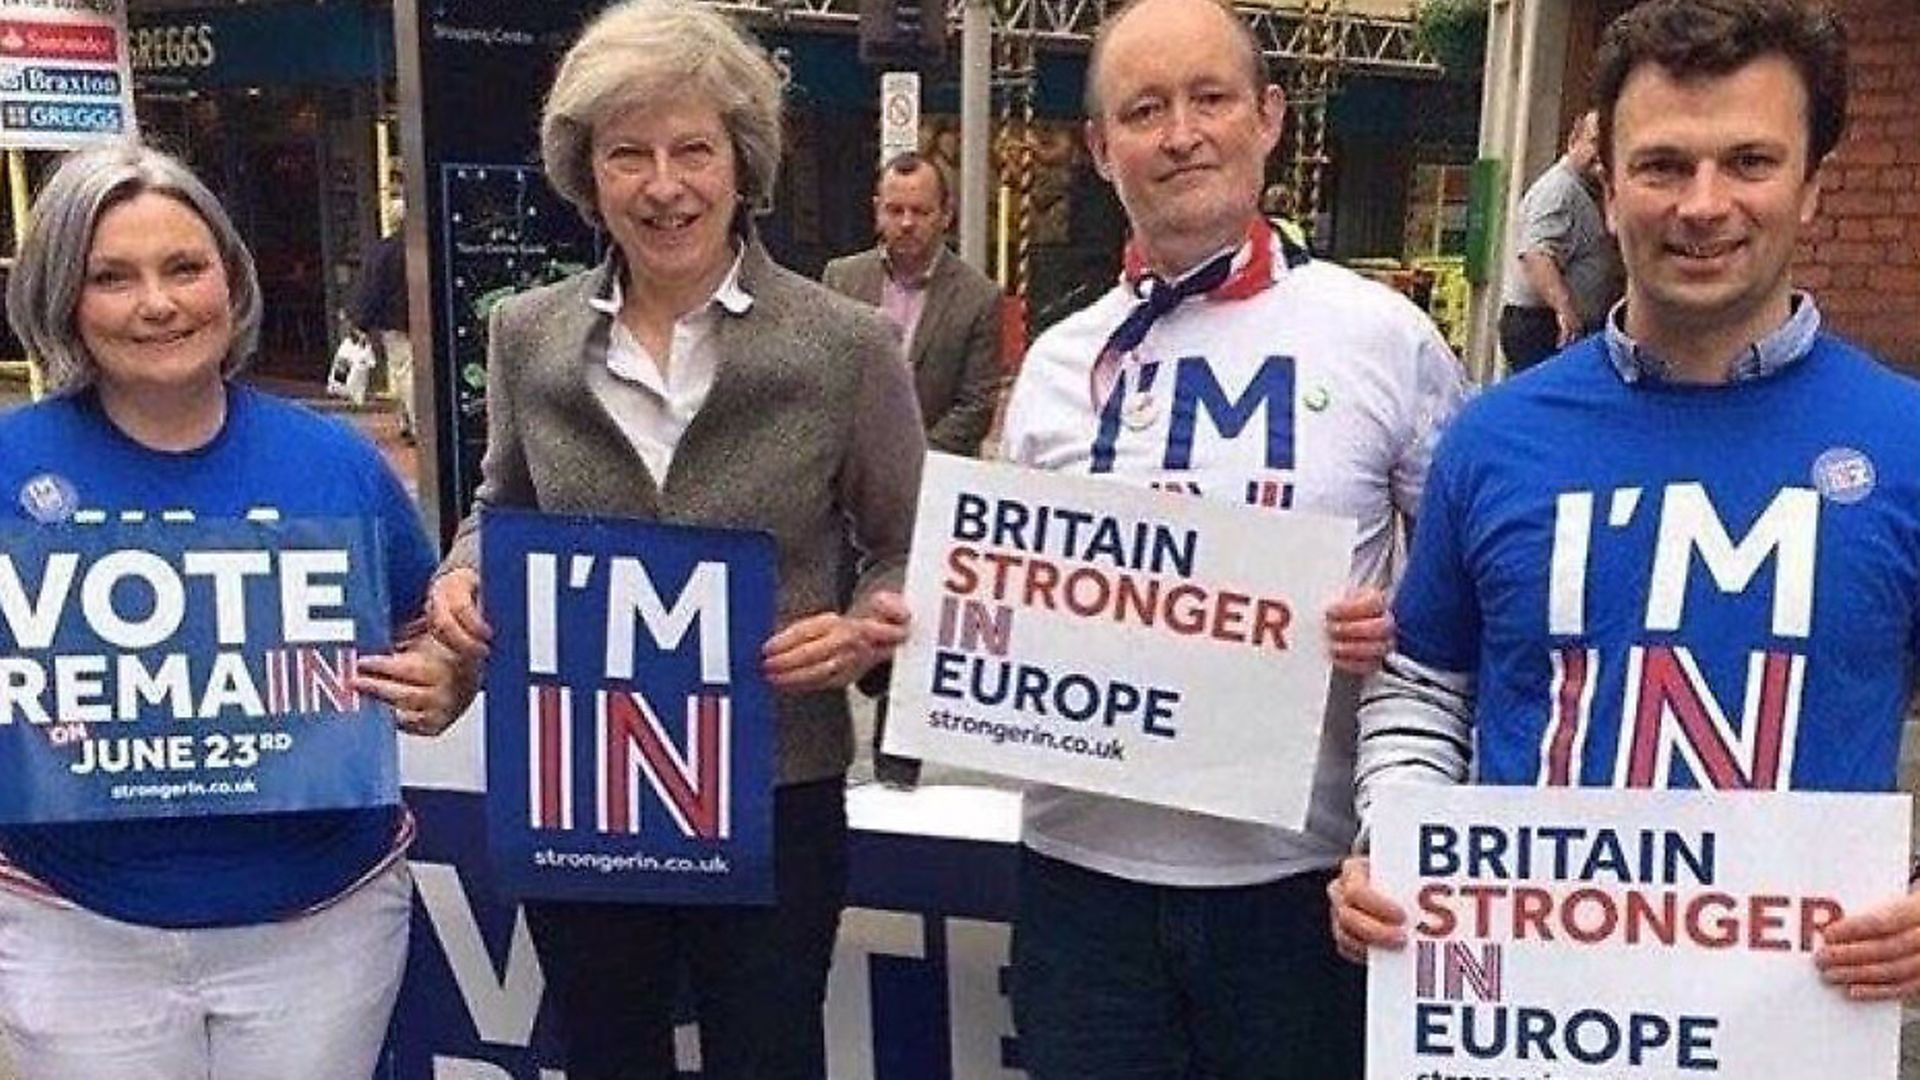 Theresa May campaigning to Remain in the EU referendum. Photograph: Twitter. - Credit: Archant